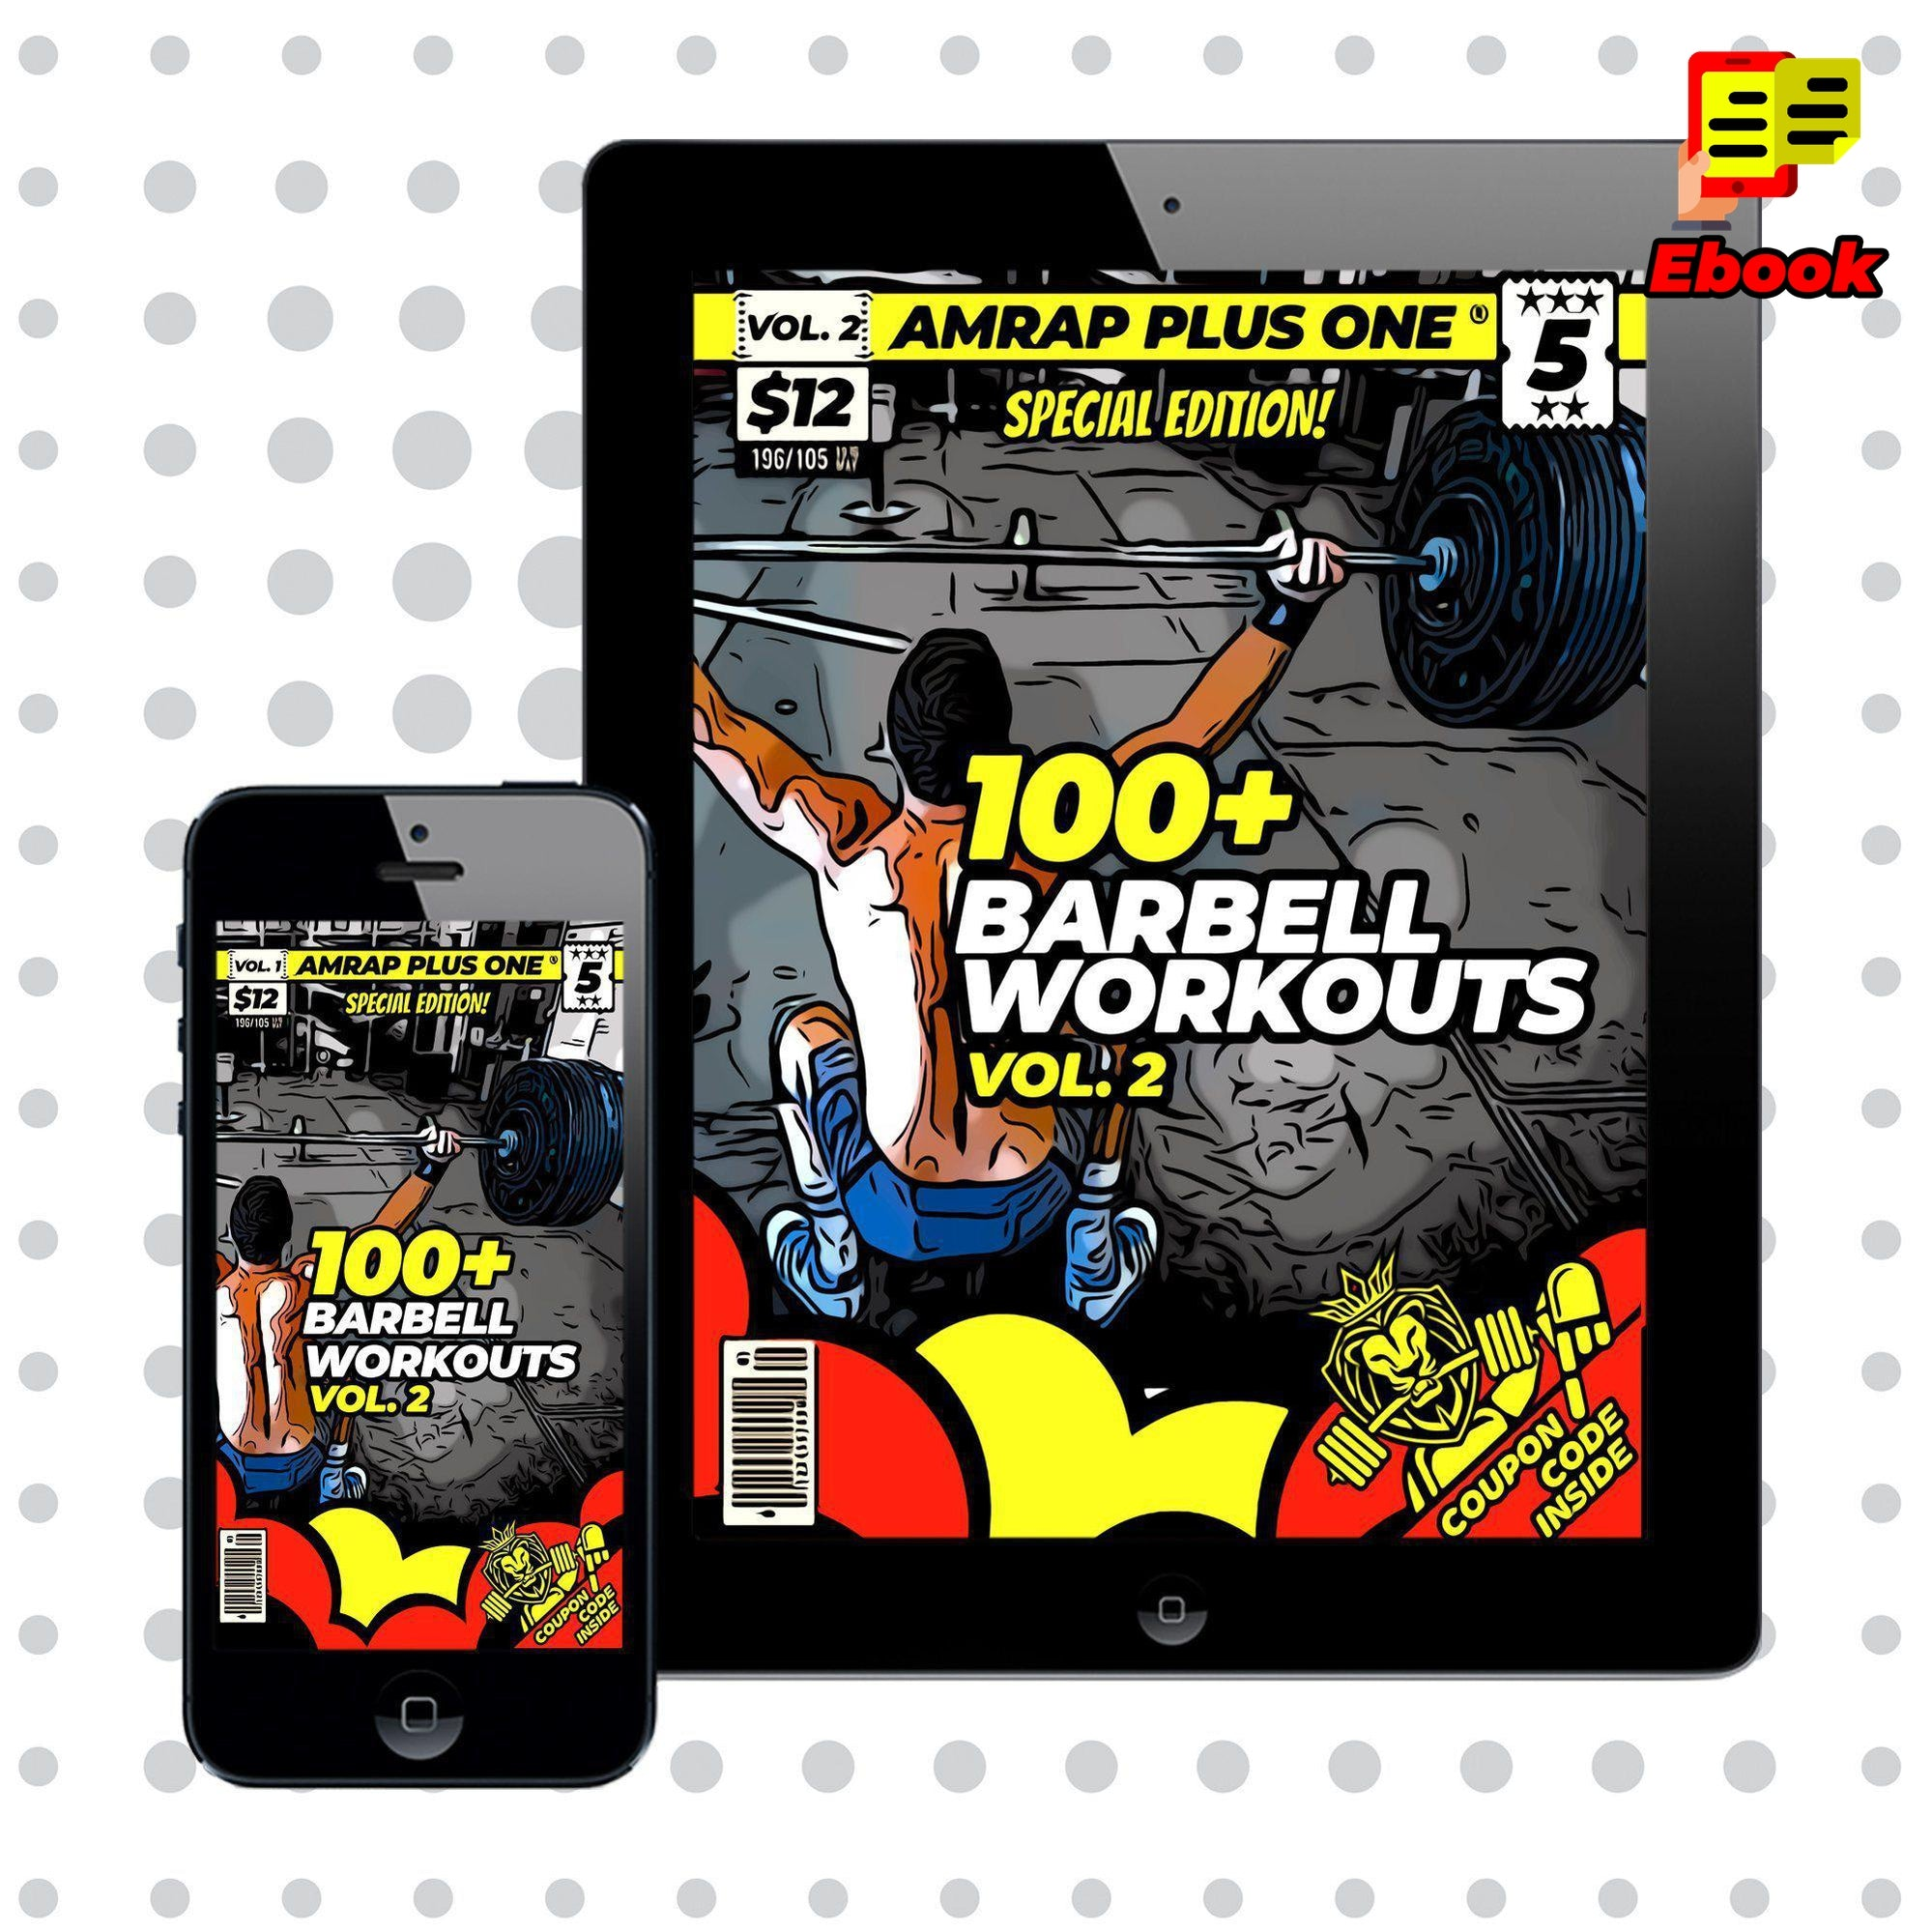 100+ Barbell Workouts Vol. 2 - AMRAP Plus One